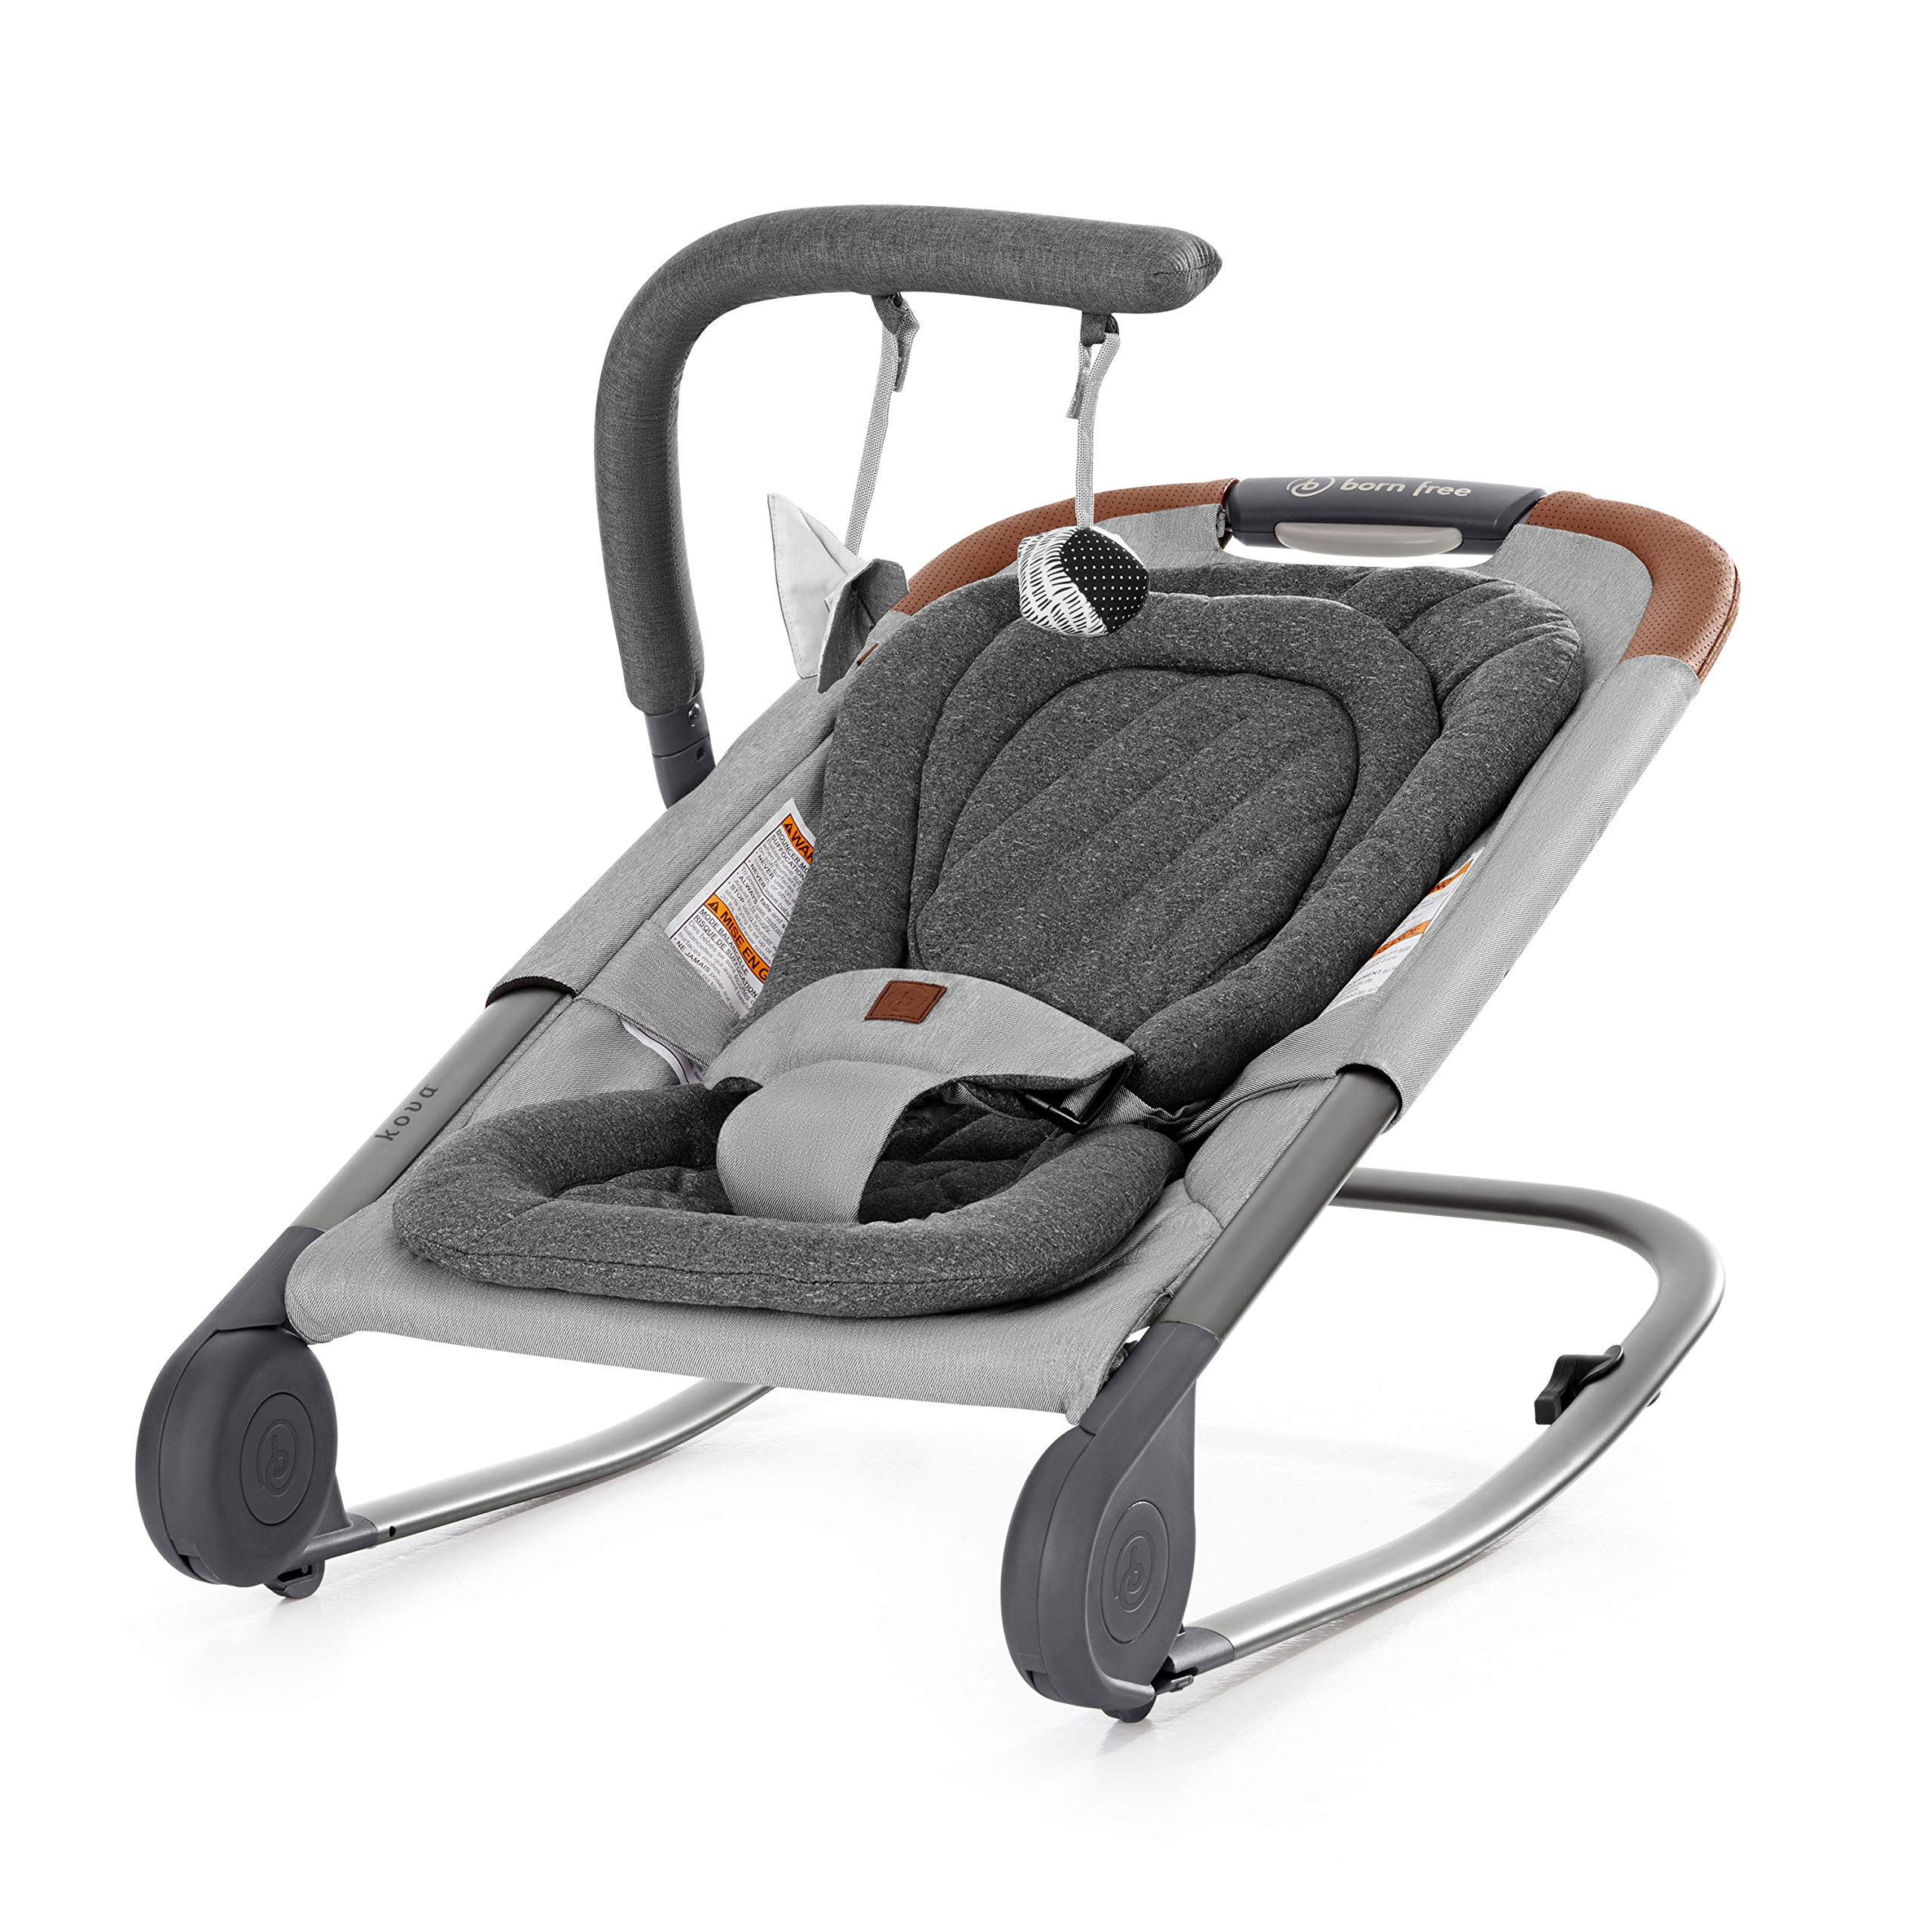 born free KOVA Baby Bouncer -  Baby Rocker with Two Modes of Use, Removable Toys and Compact Fold for Storage or Travel – Easy to Clean, Machine Washable Fabrics by Born Free (Image #2)